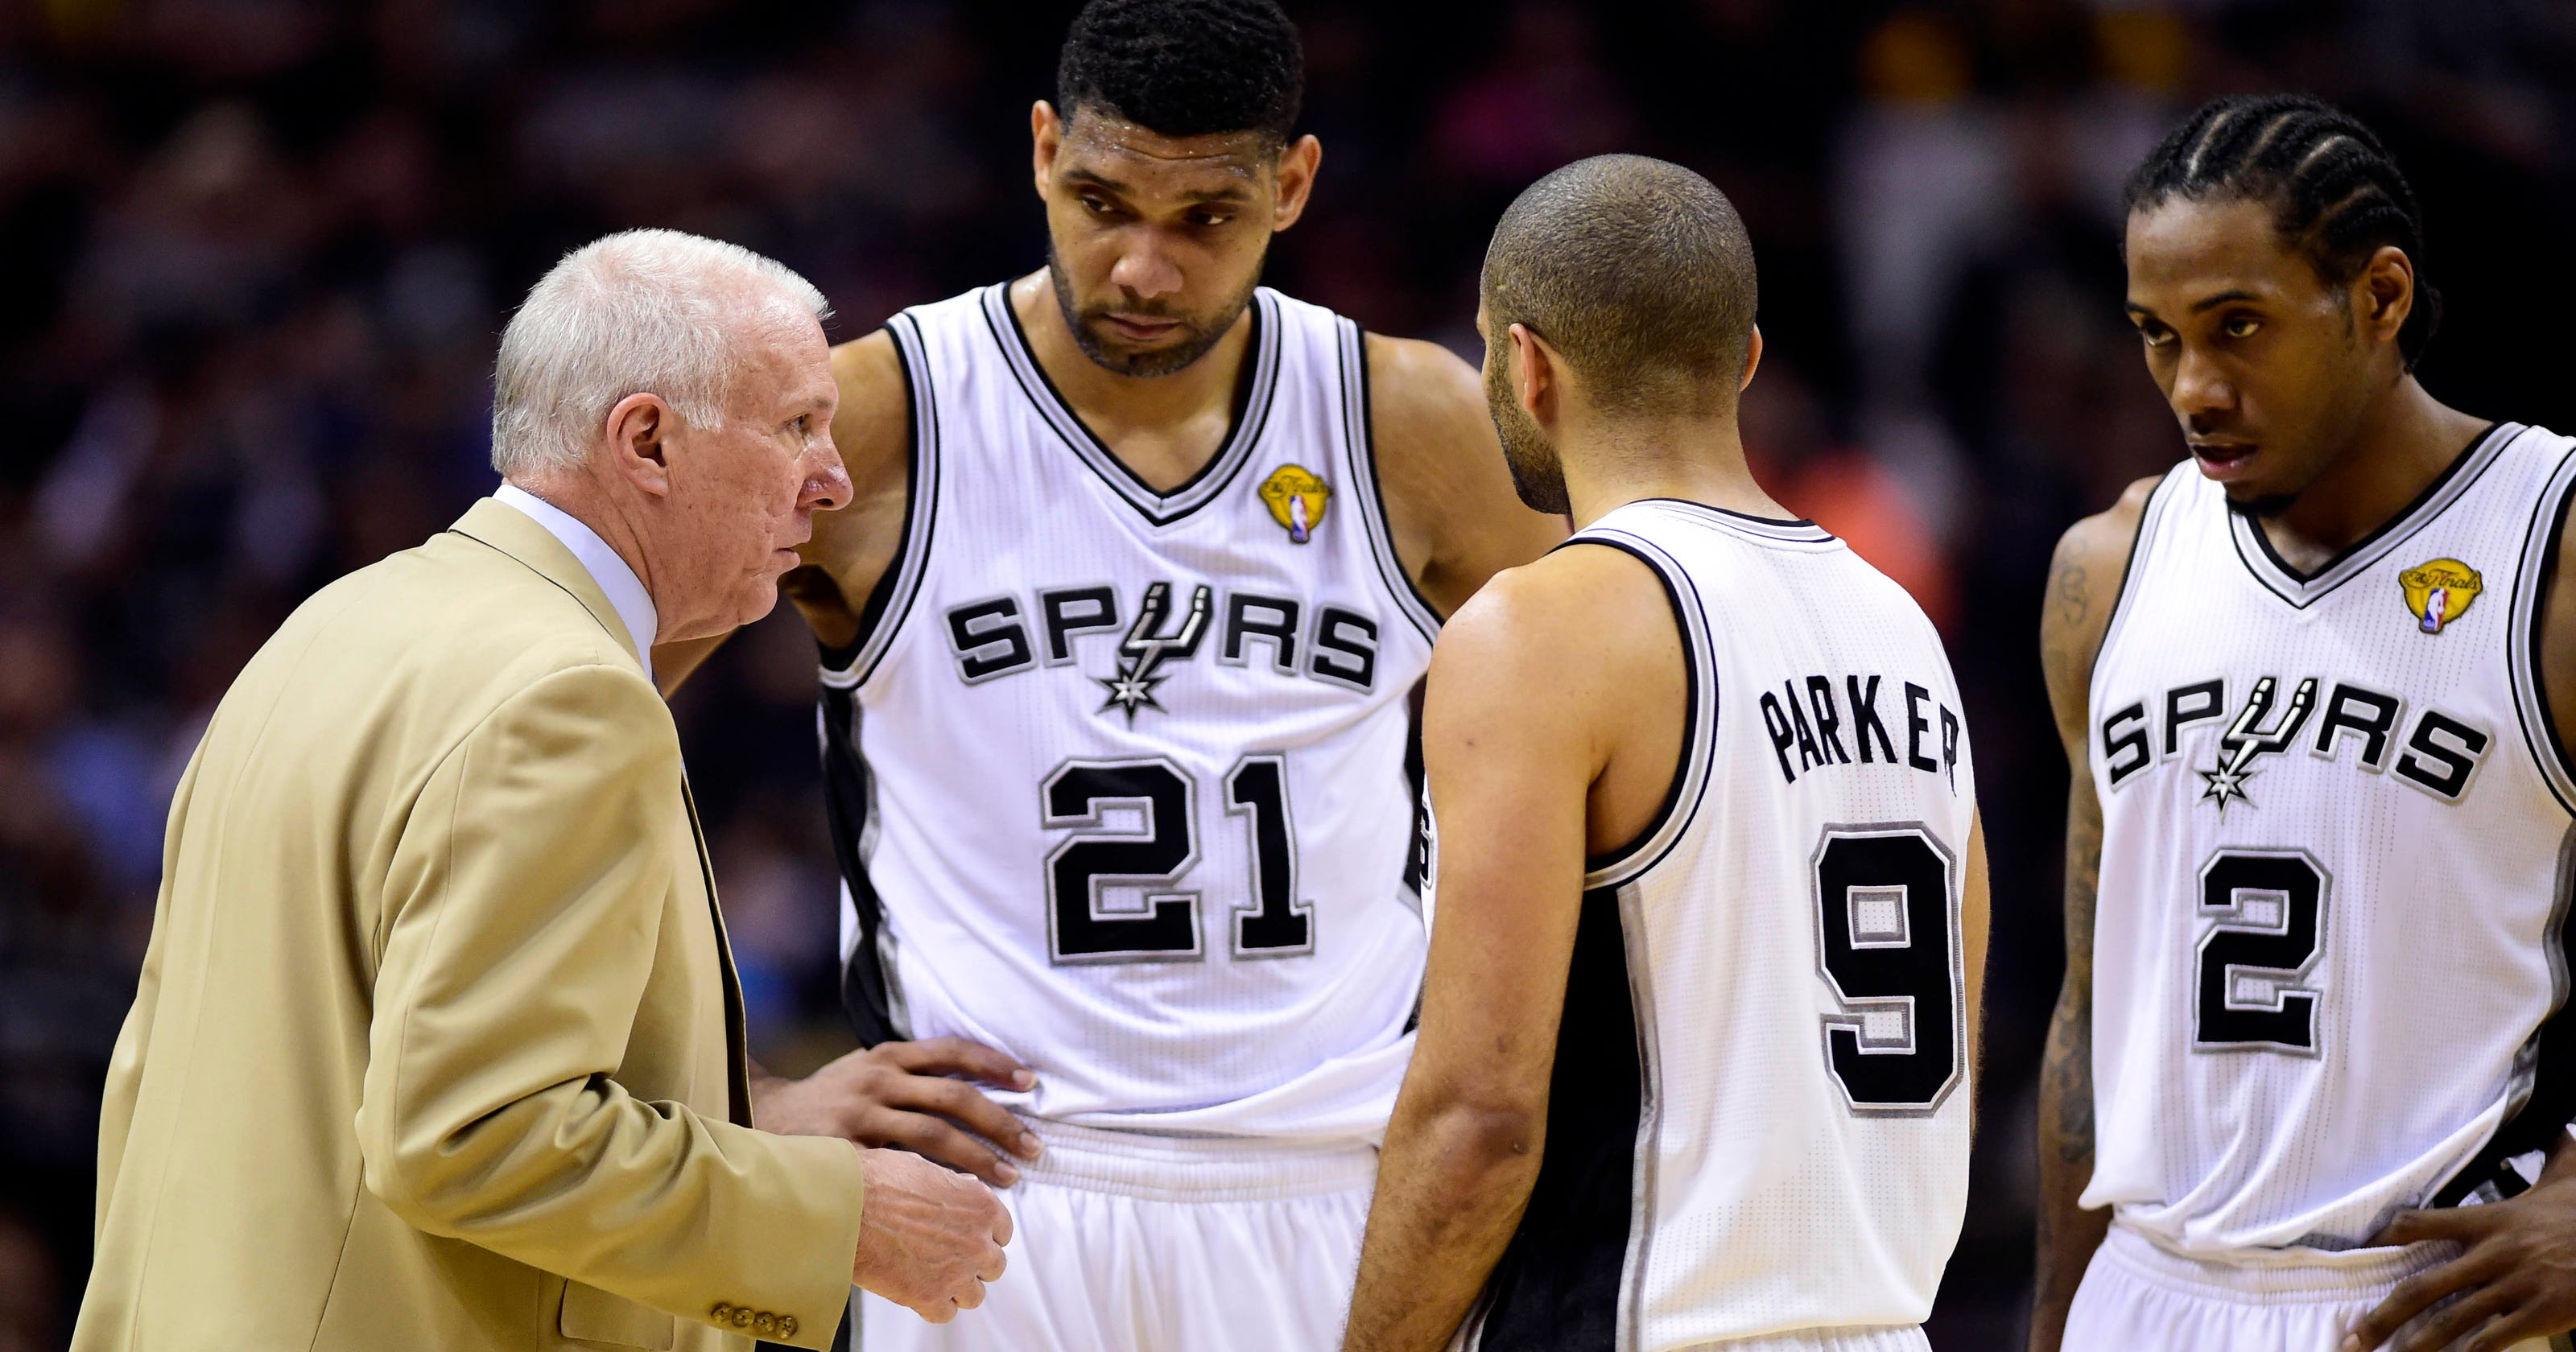 Why Spurs could be back in NBA Finals next season